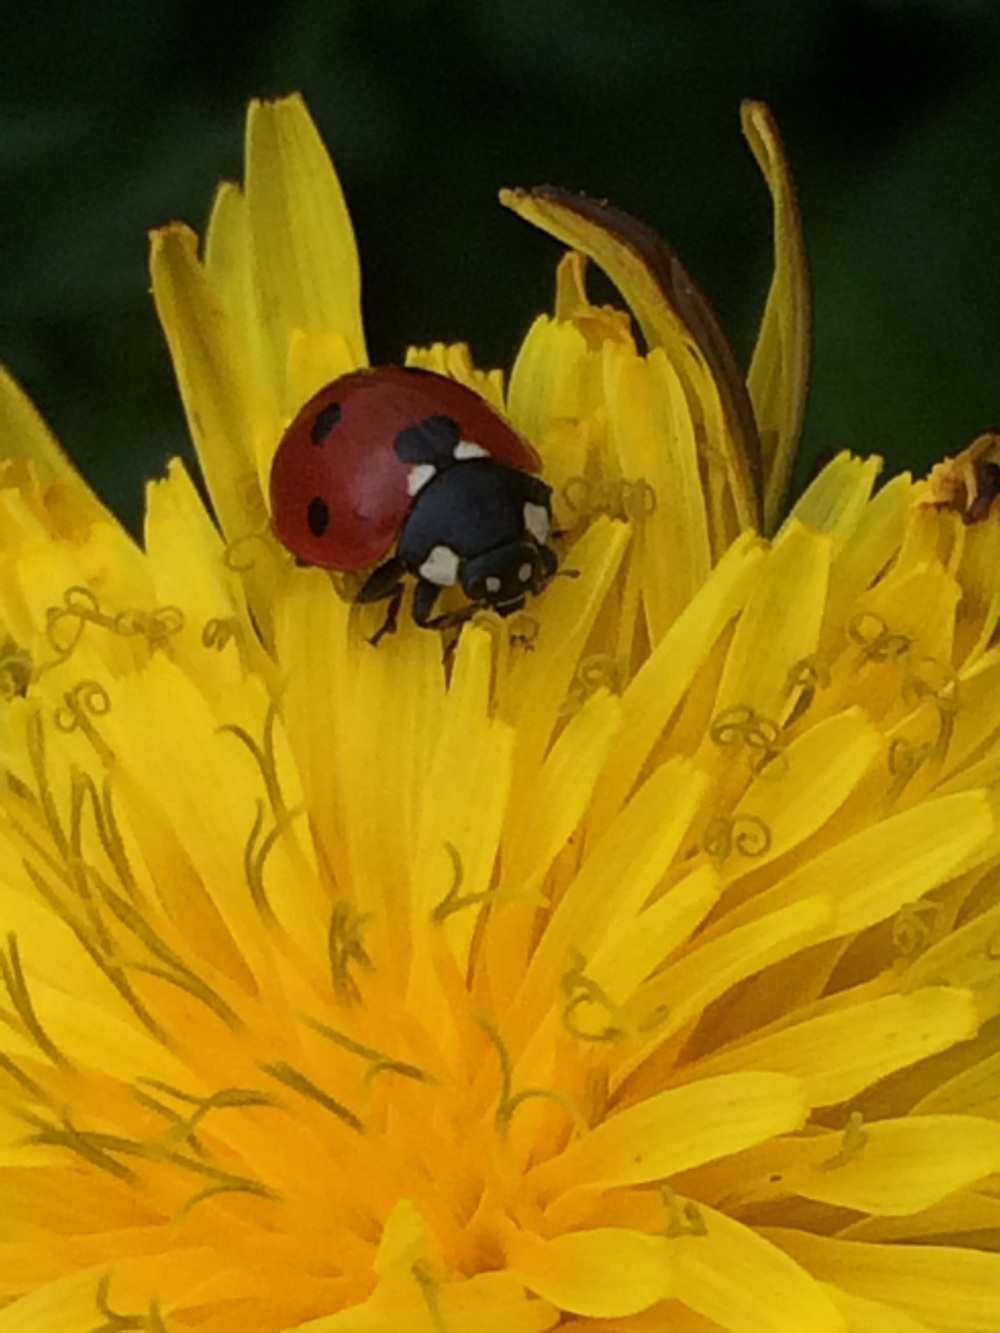 A ladybird beetle on common dandelion.